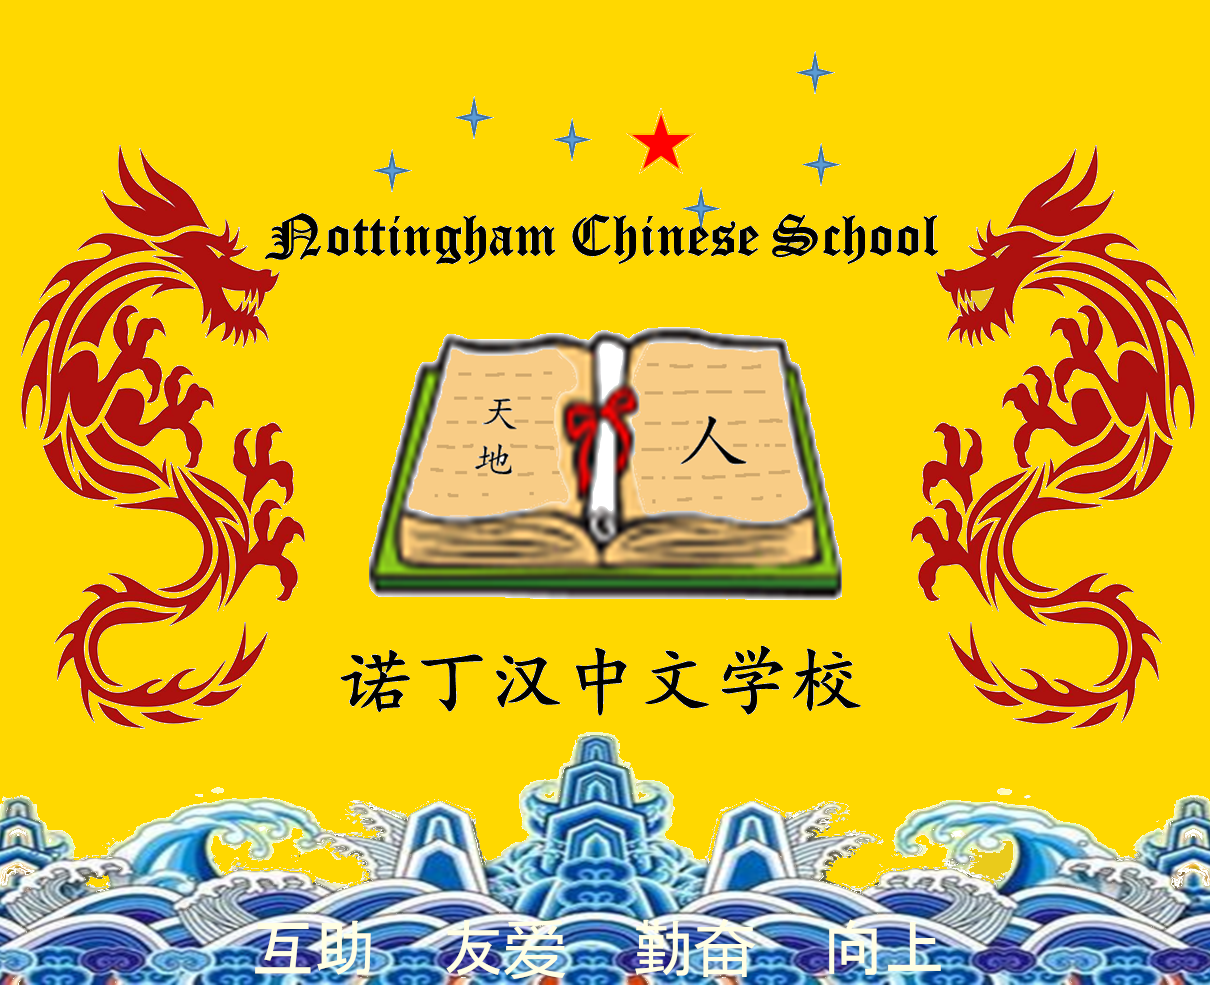 Nottingham Chinese School